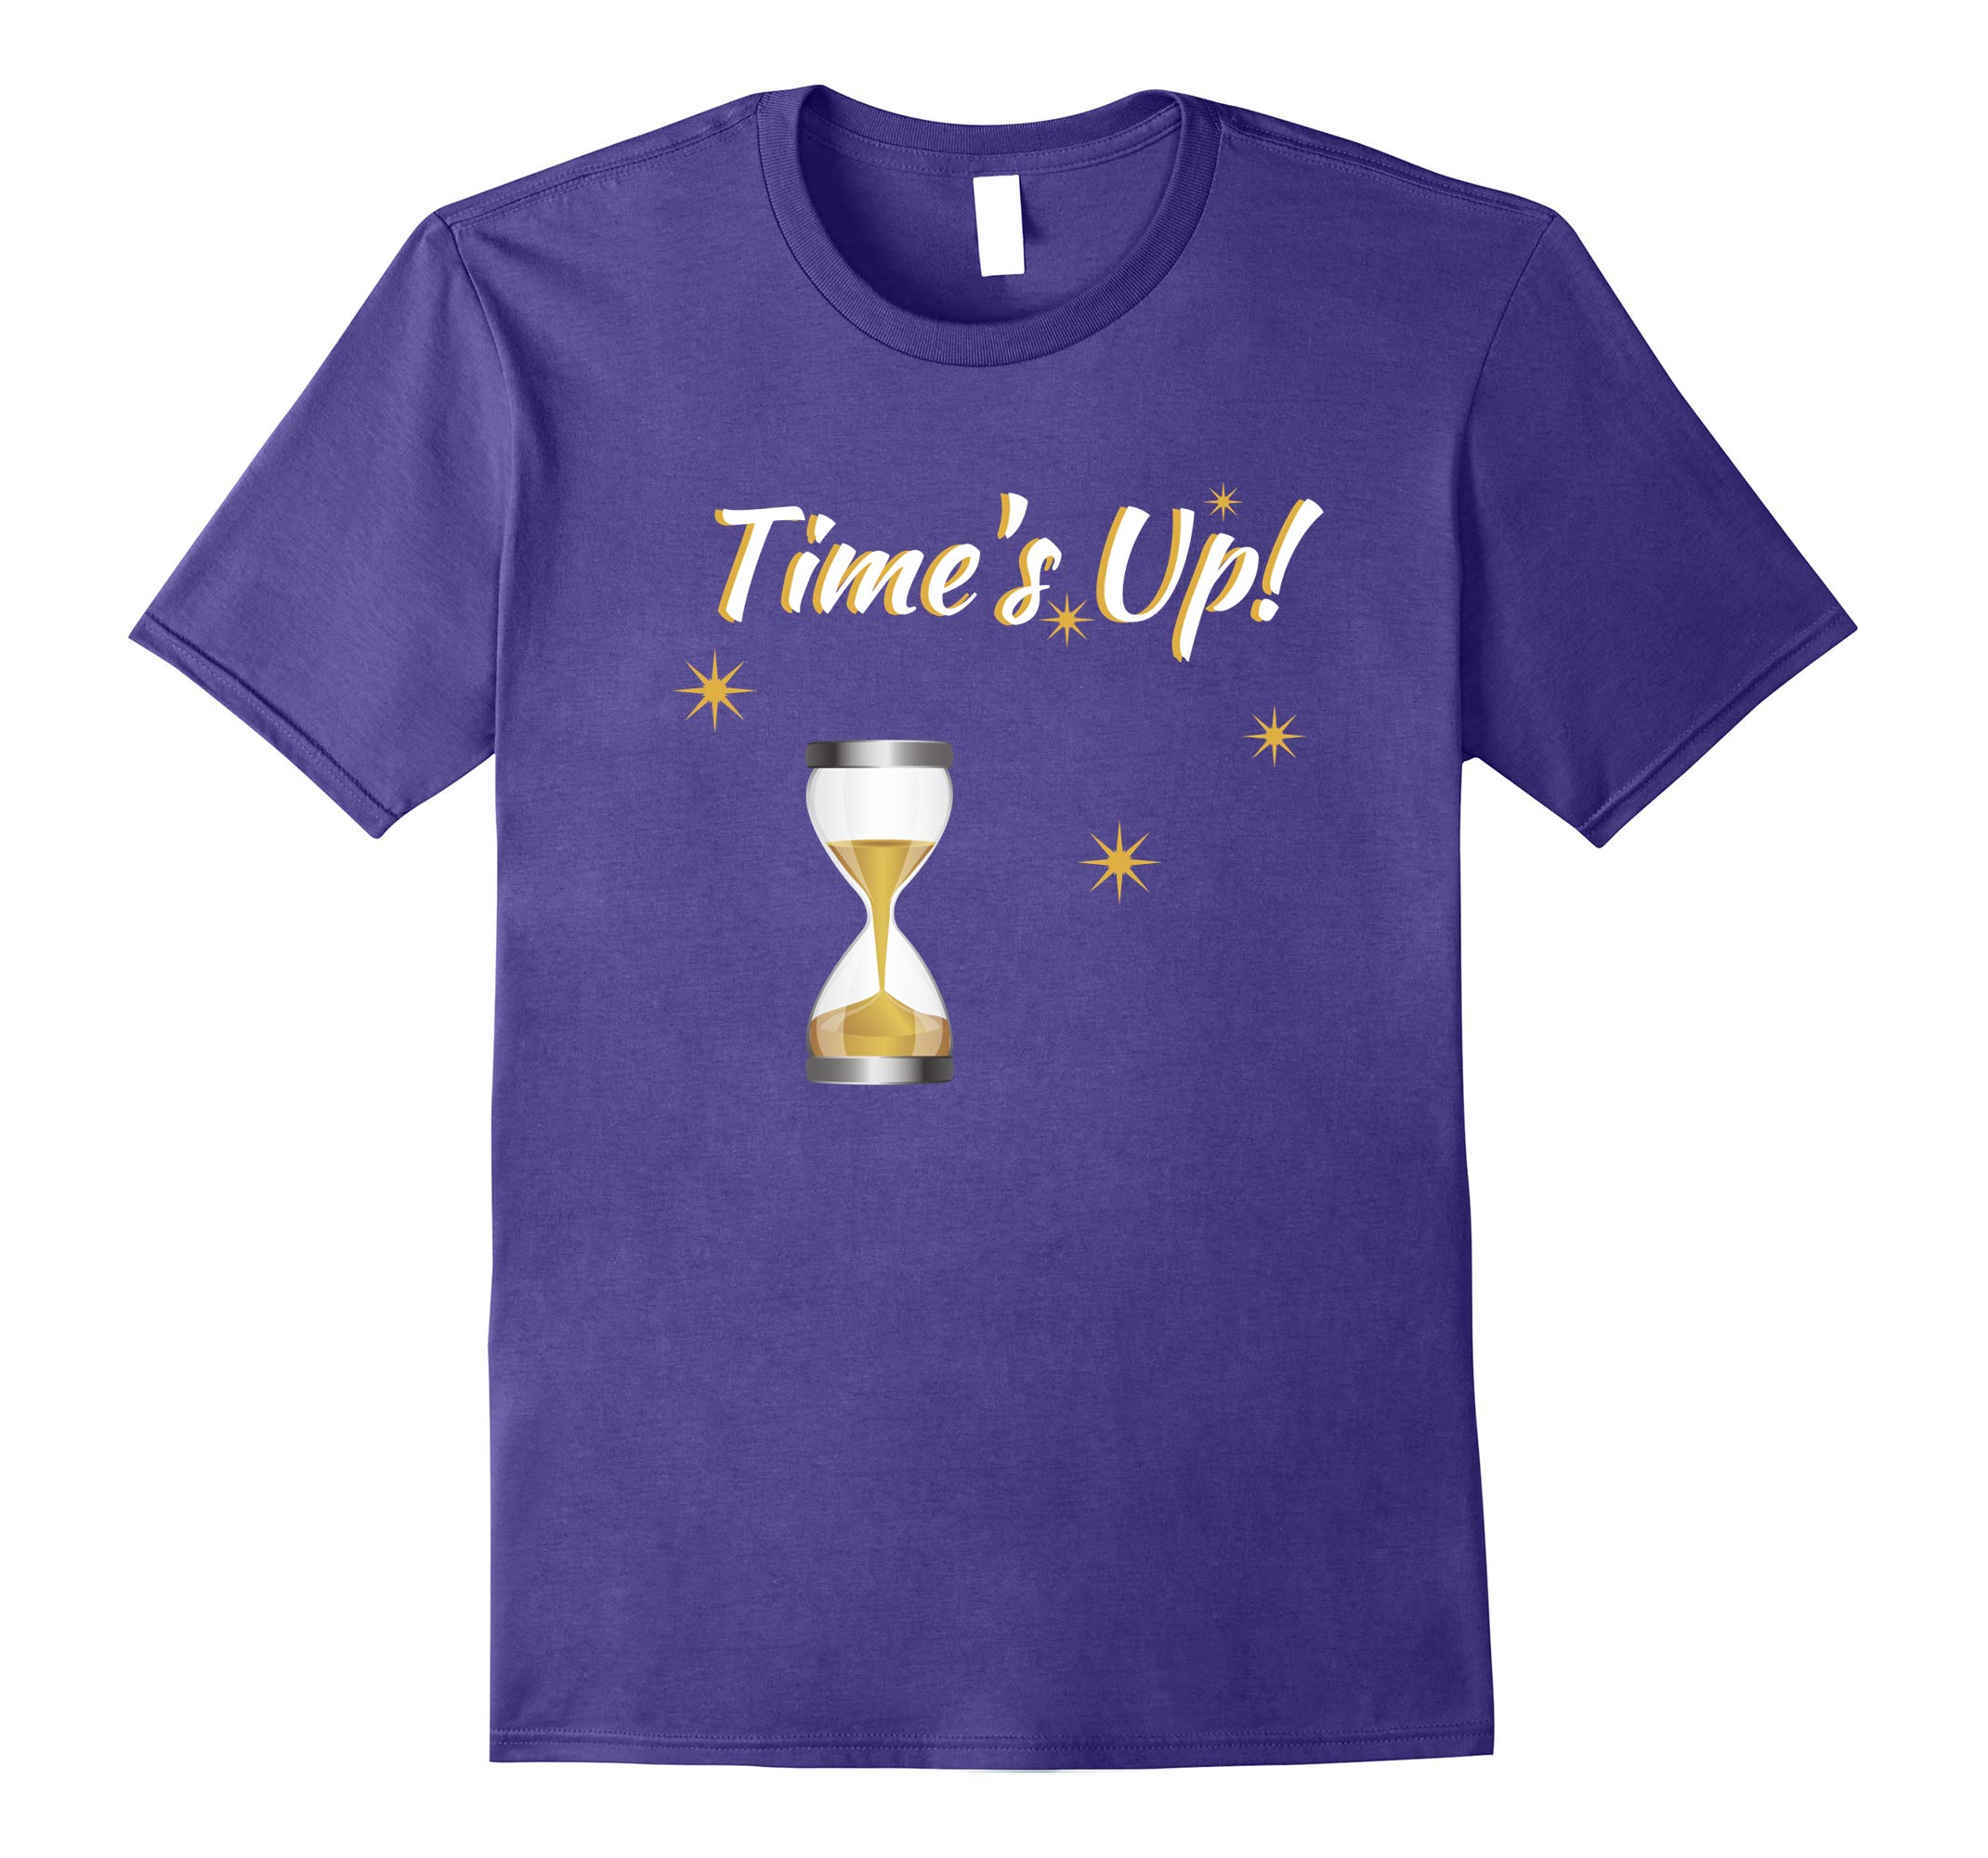 Time's Up! Novelty T-shirt for Non-Discrimination Cause-RT